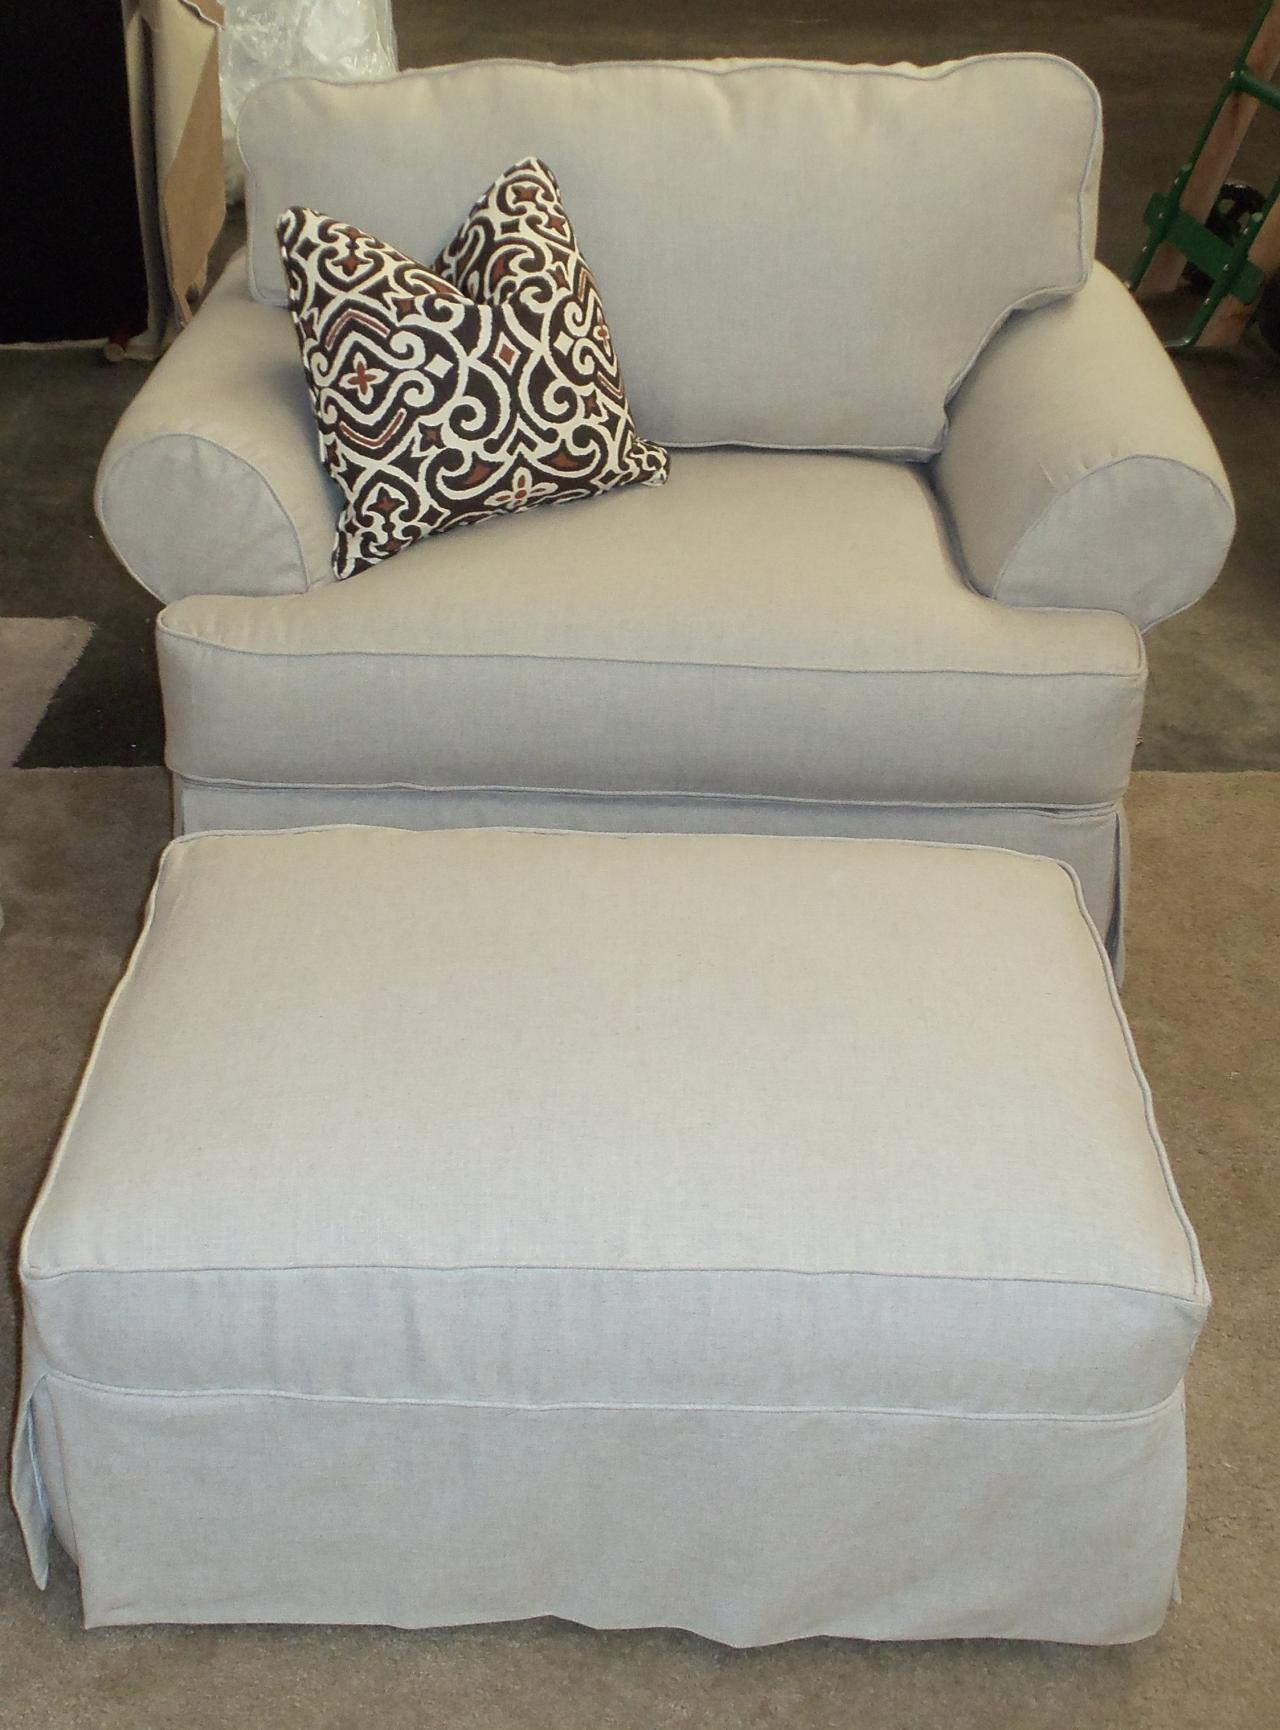 Charmant Rowe Furniture Addison Slipcover